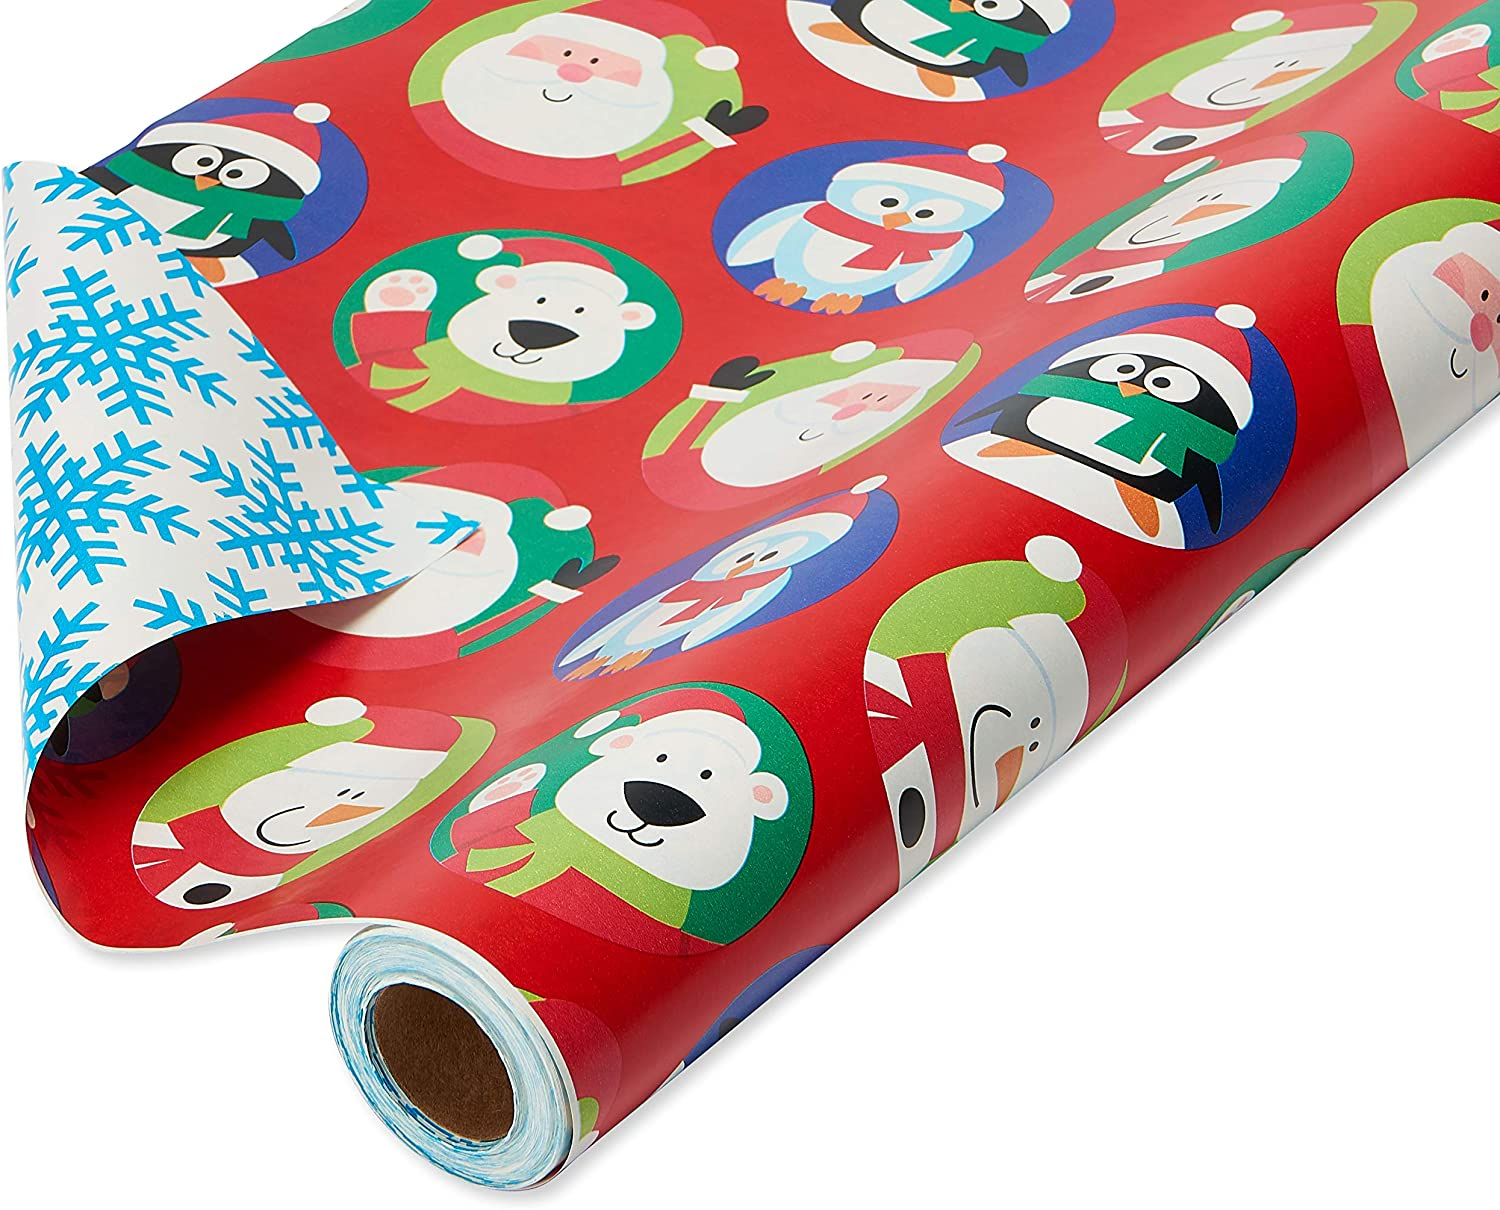 American Greetings Christmas Wrapping Paper Reversible Jumbo Roll, Santa and Snowflakes (1 Pack, 175 sq. ft.)